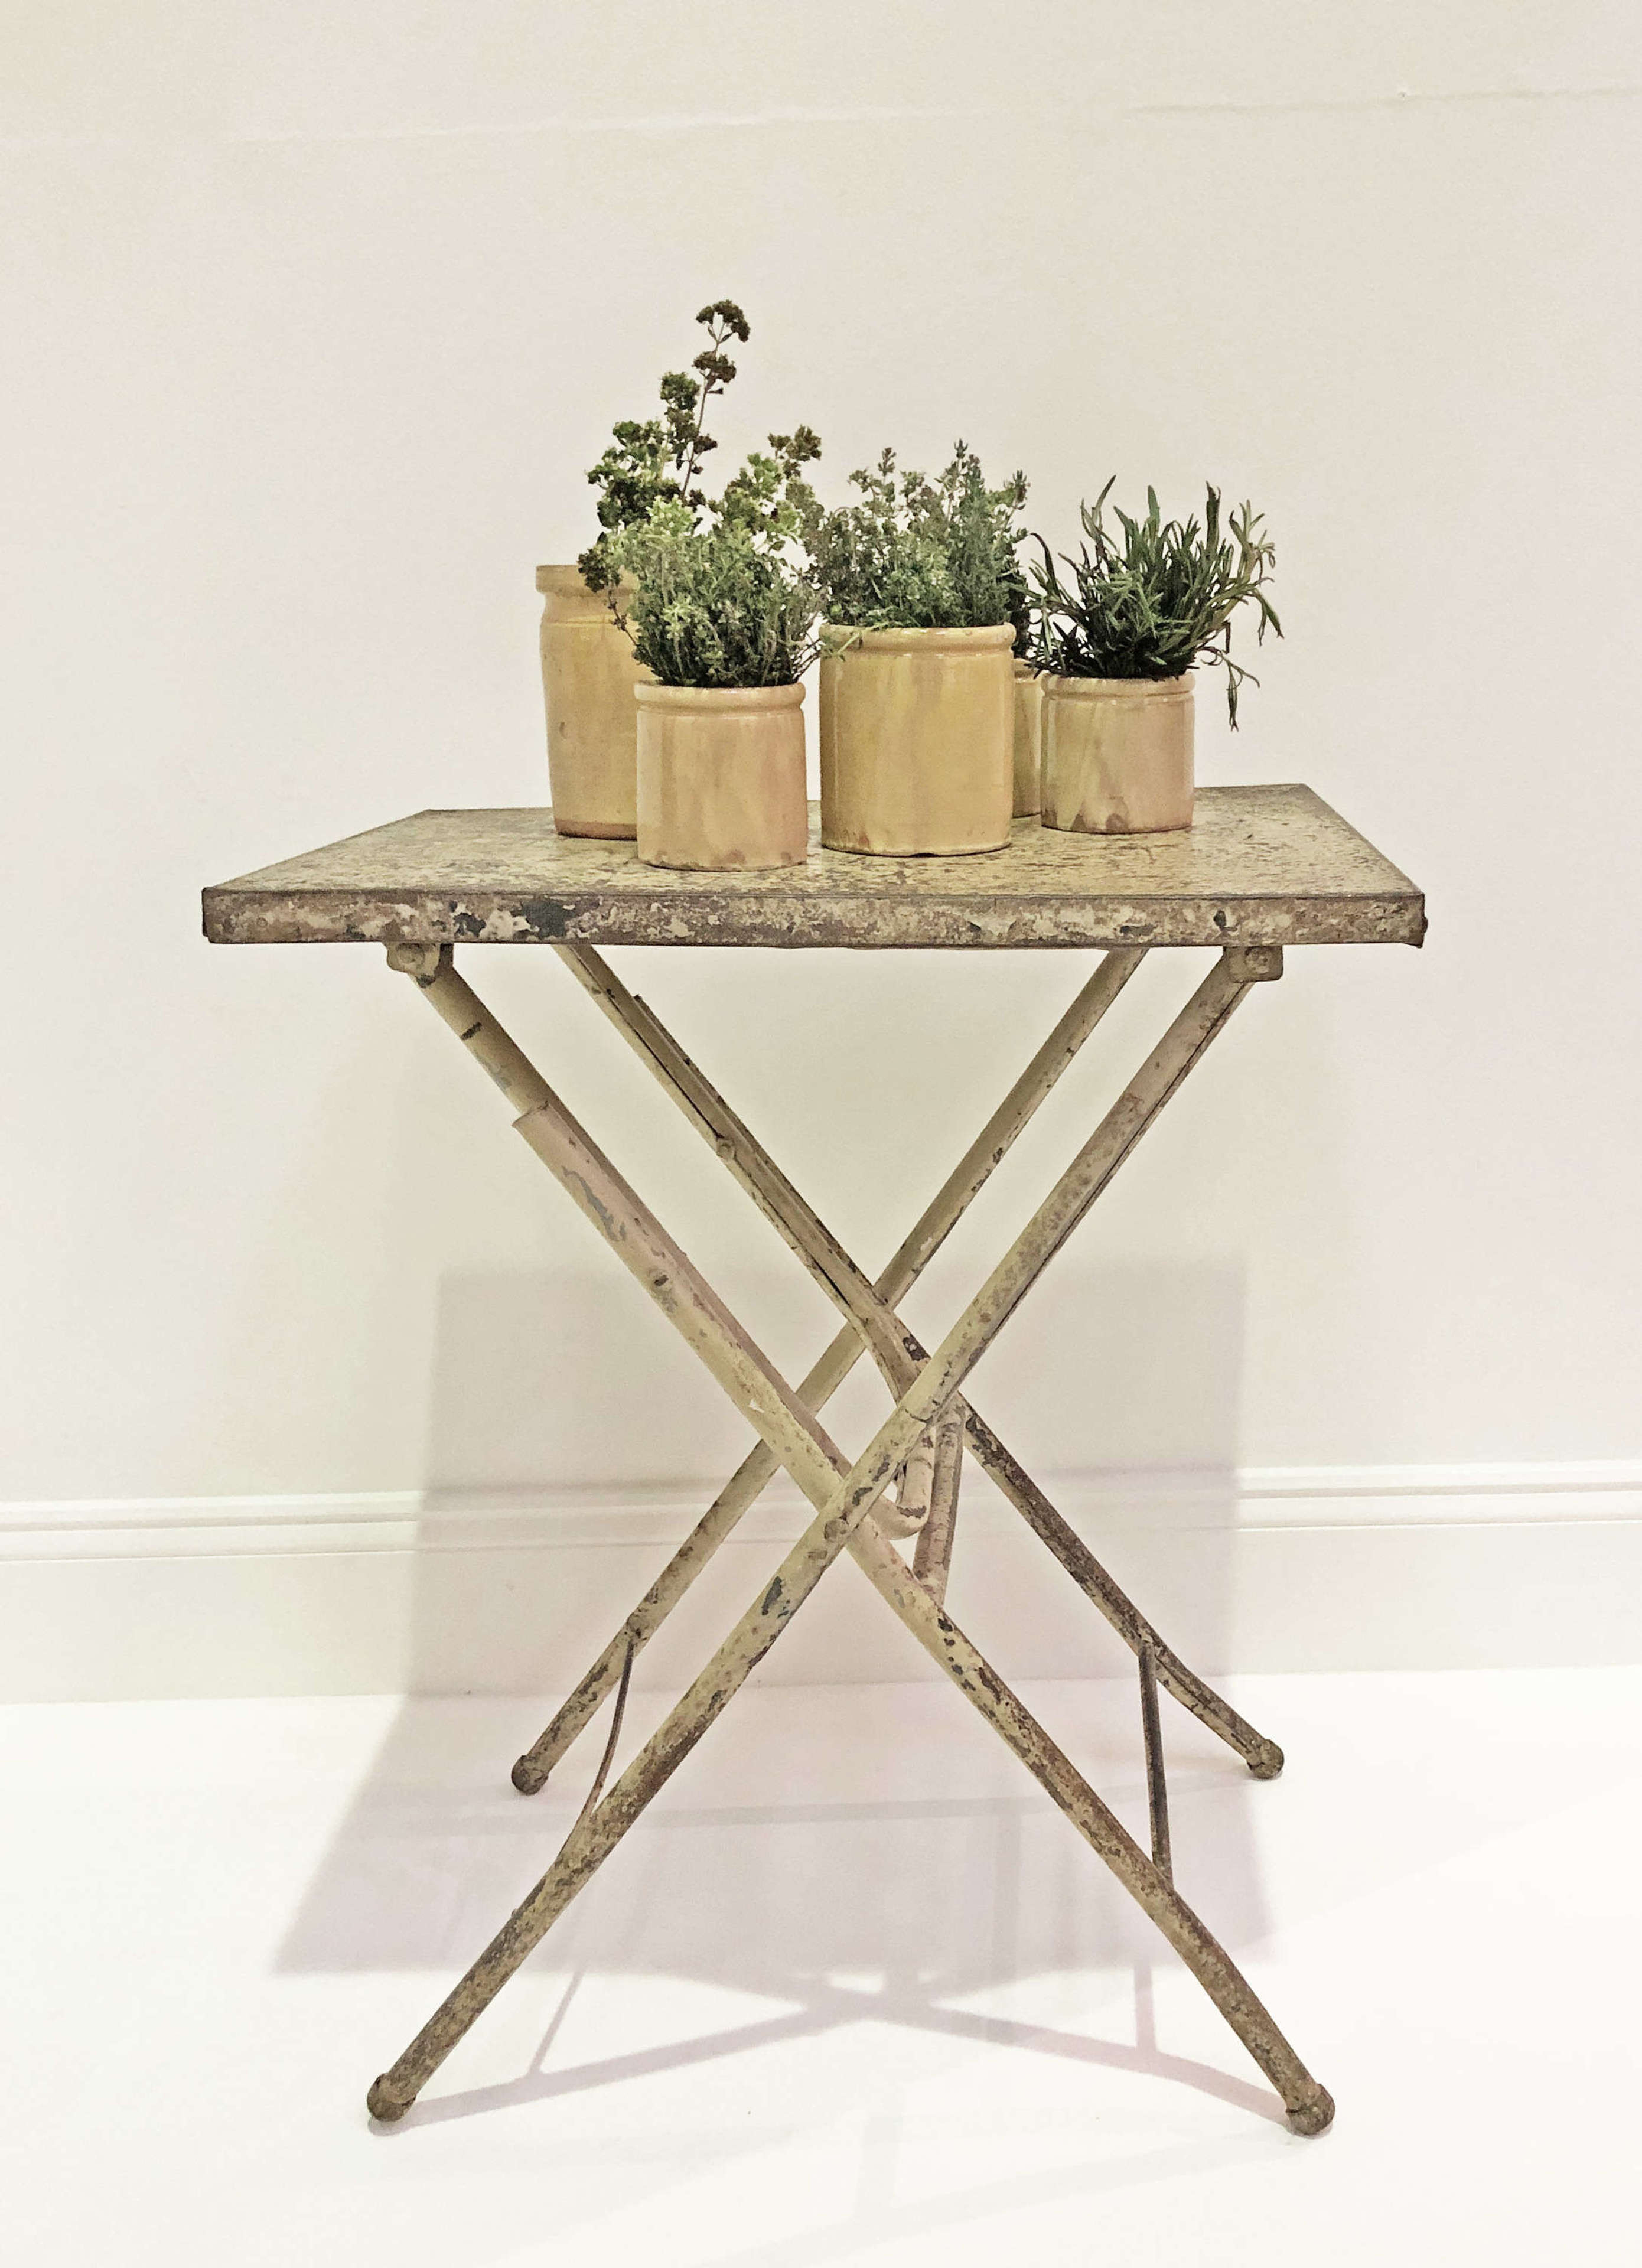 Little painted metal folding Table - circa 1940